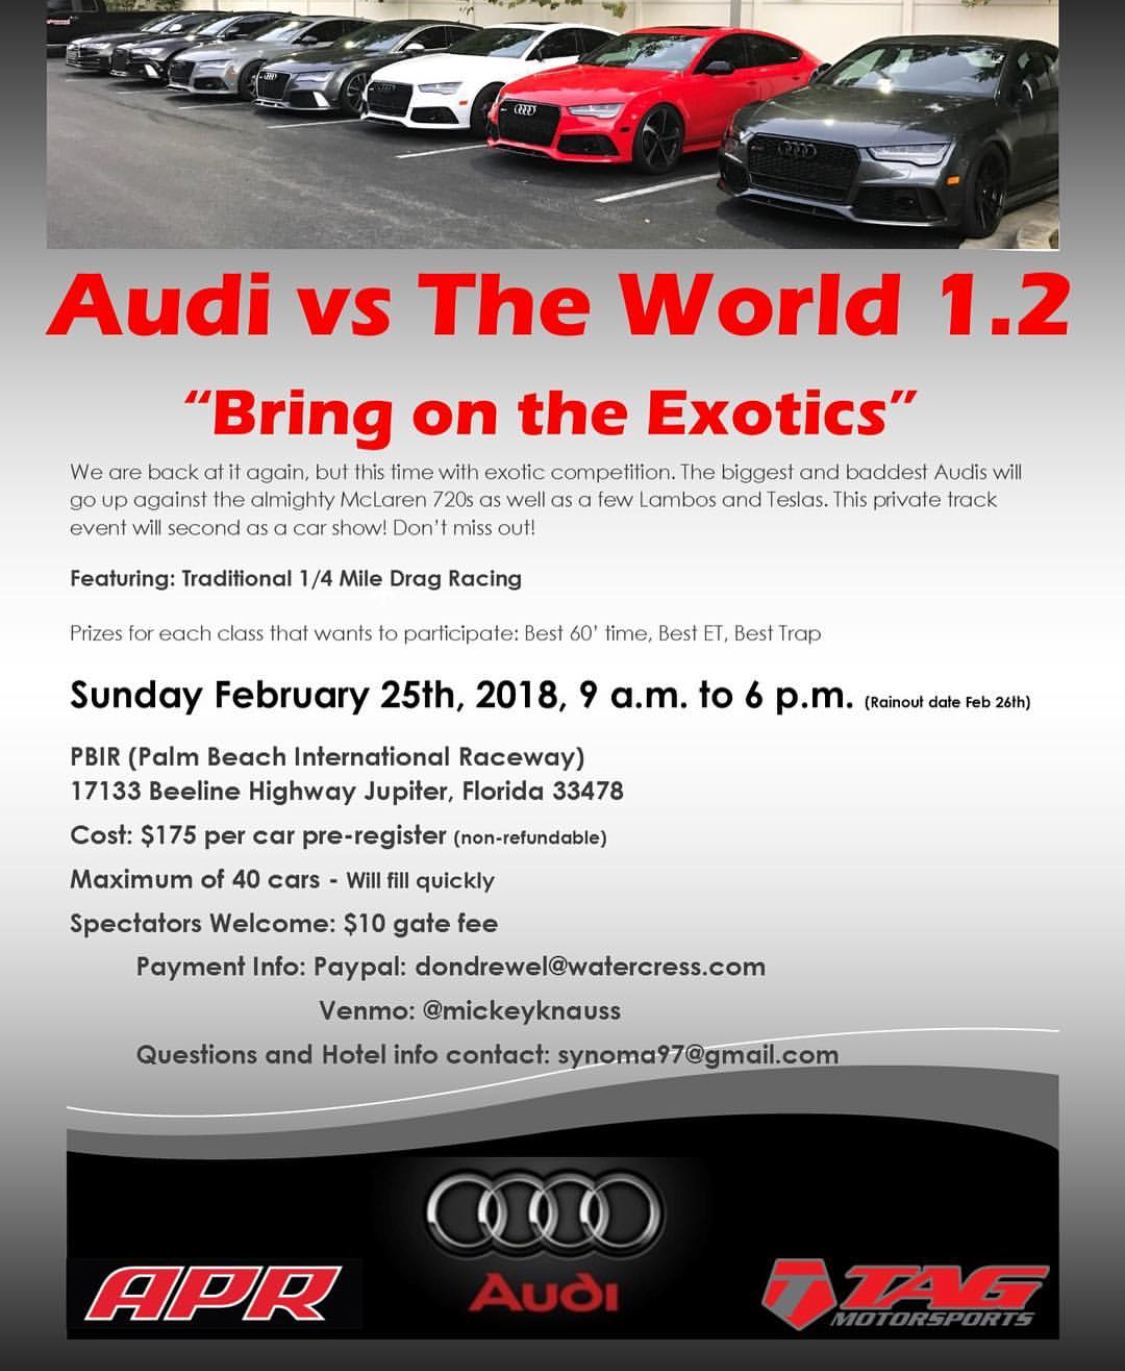 Audi vs the World – Feb 25th, 2018